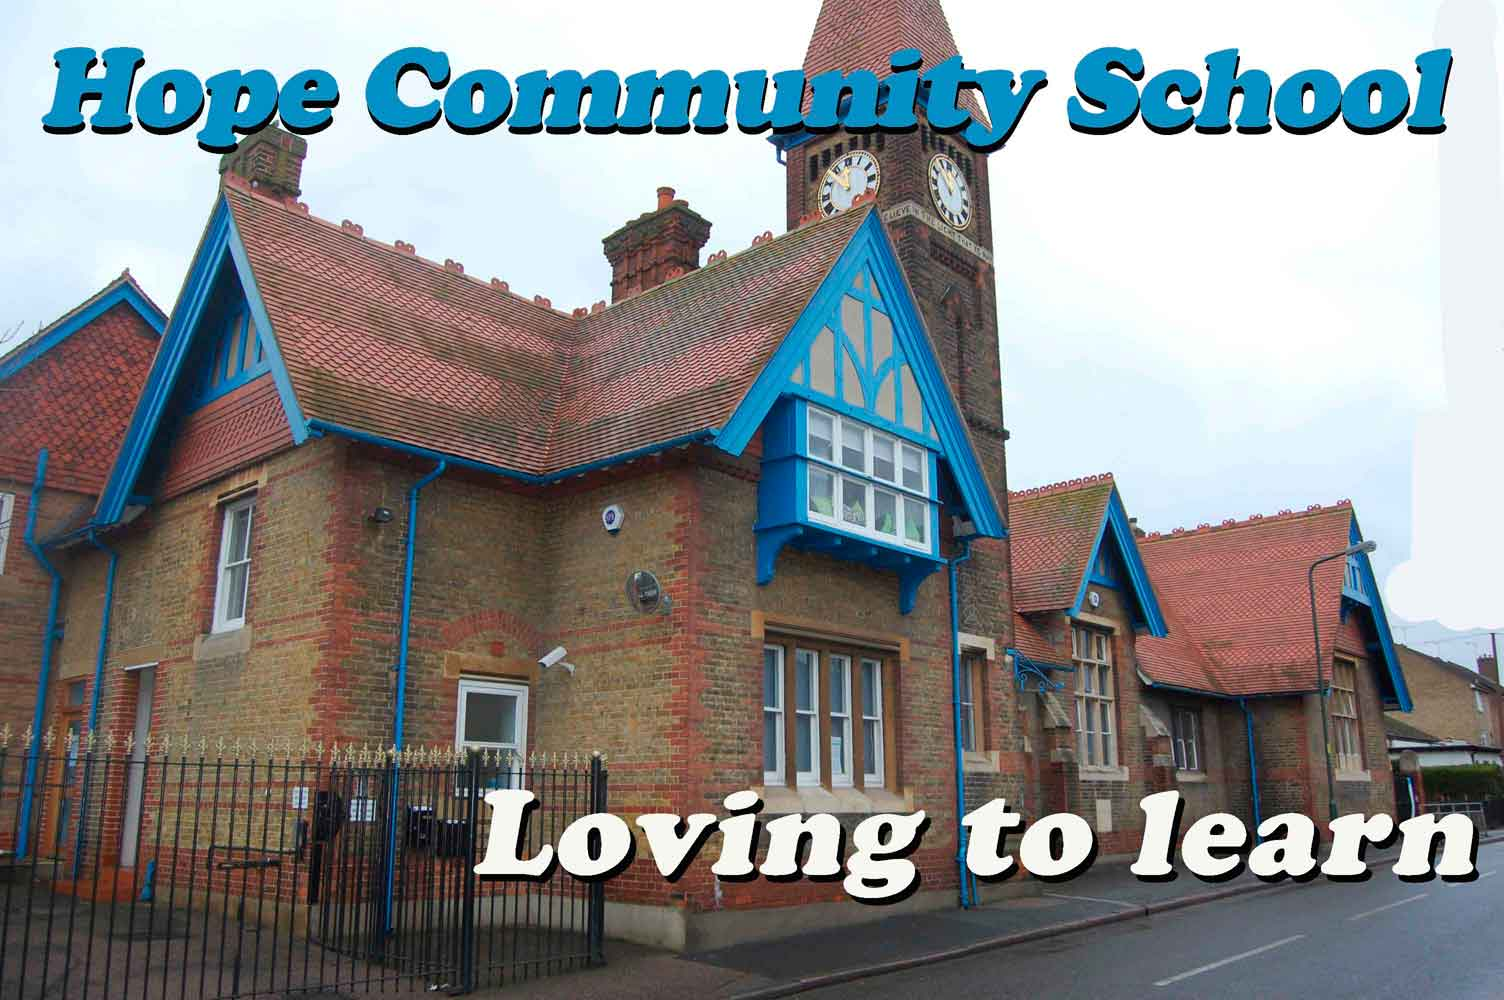 Hope Community School - Loving to Learn